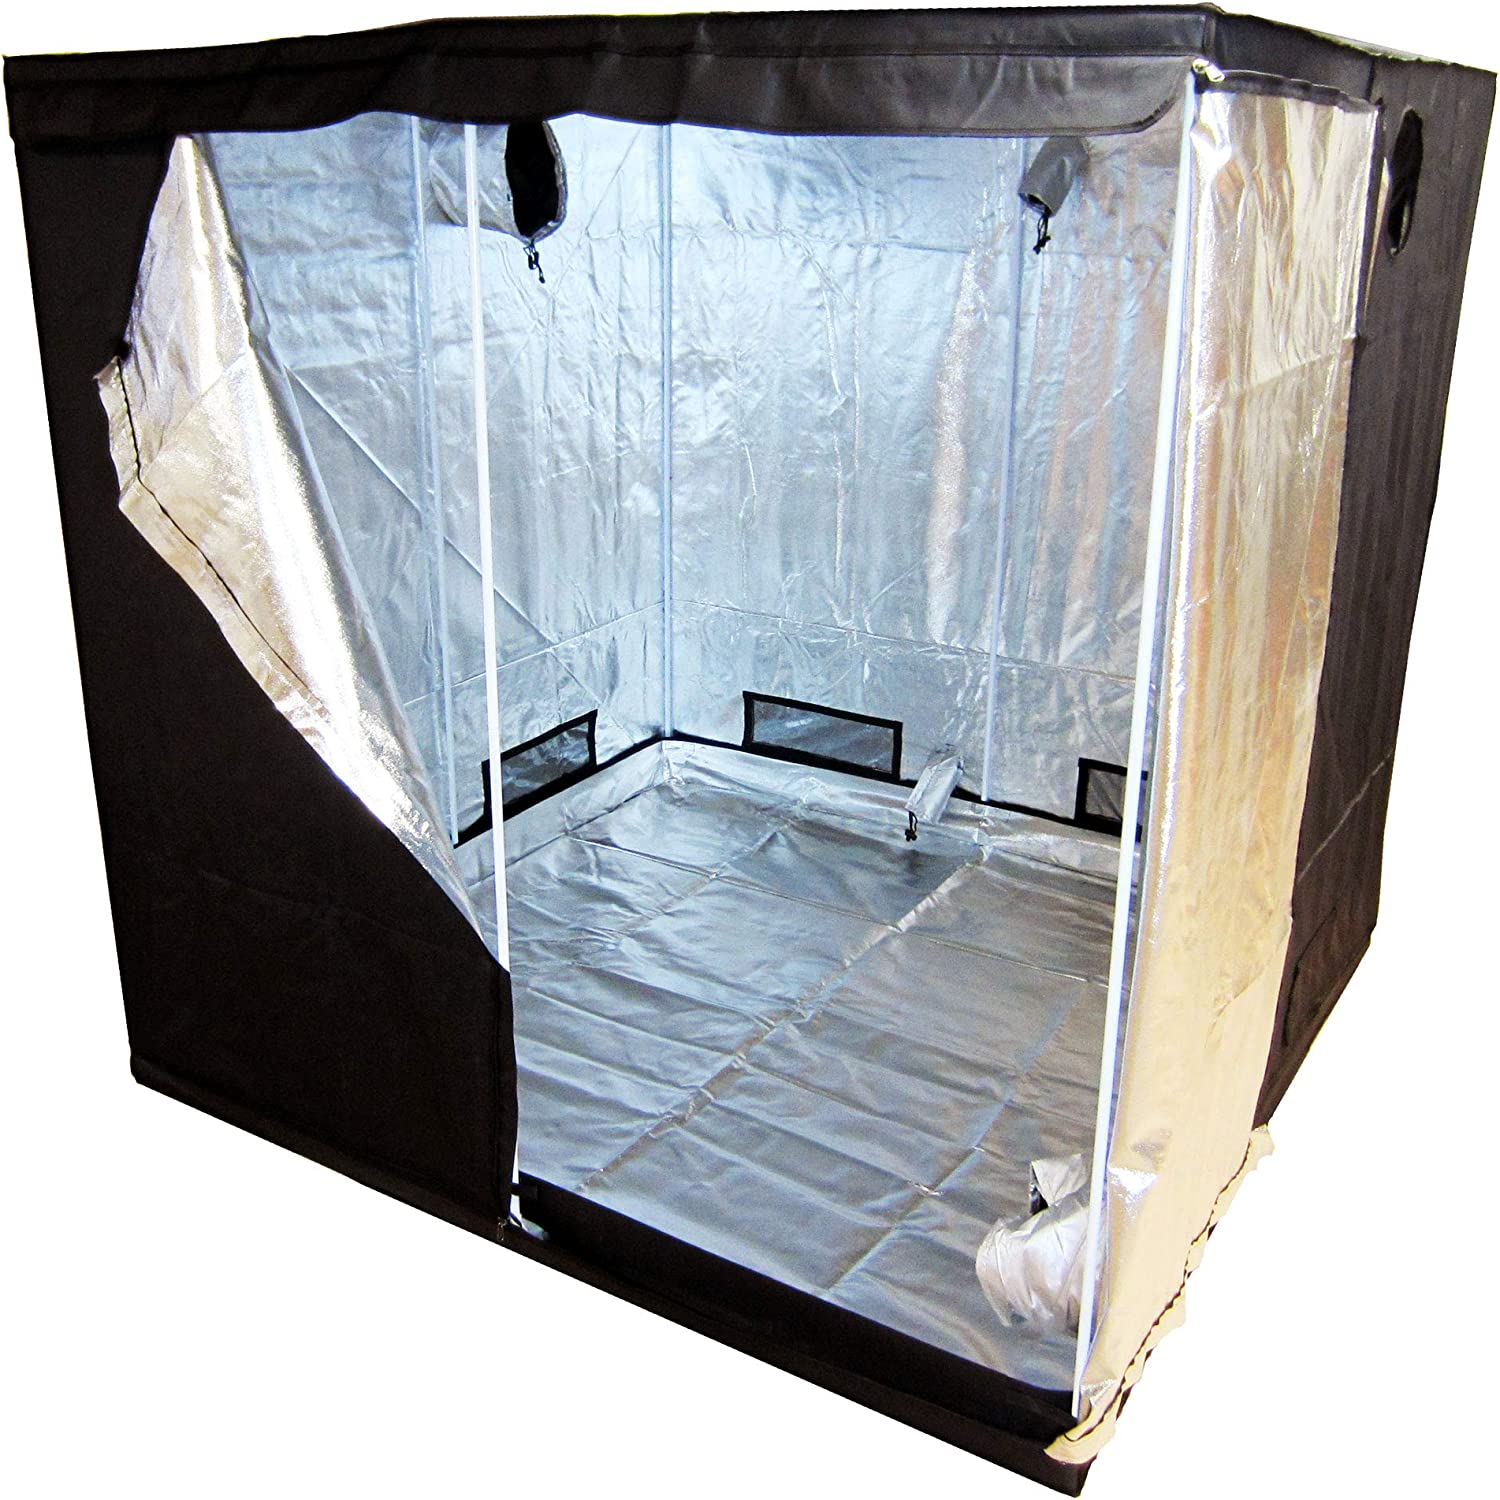 Propagation Senua 600D Mylar Hydroponic Water-Resistant Grow Tent with Observation Window and Removable Floor Tray Tool Bag for Indoor Plant Seedling etc 240 x 120 x 200 cm White Blossom